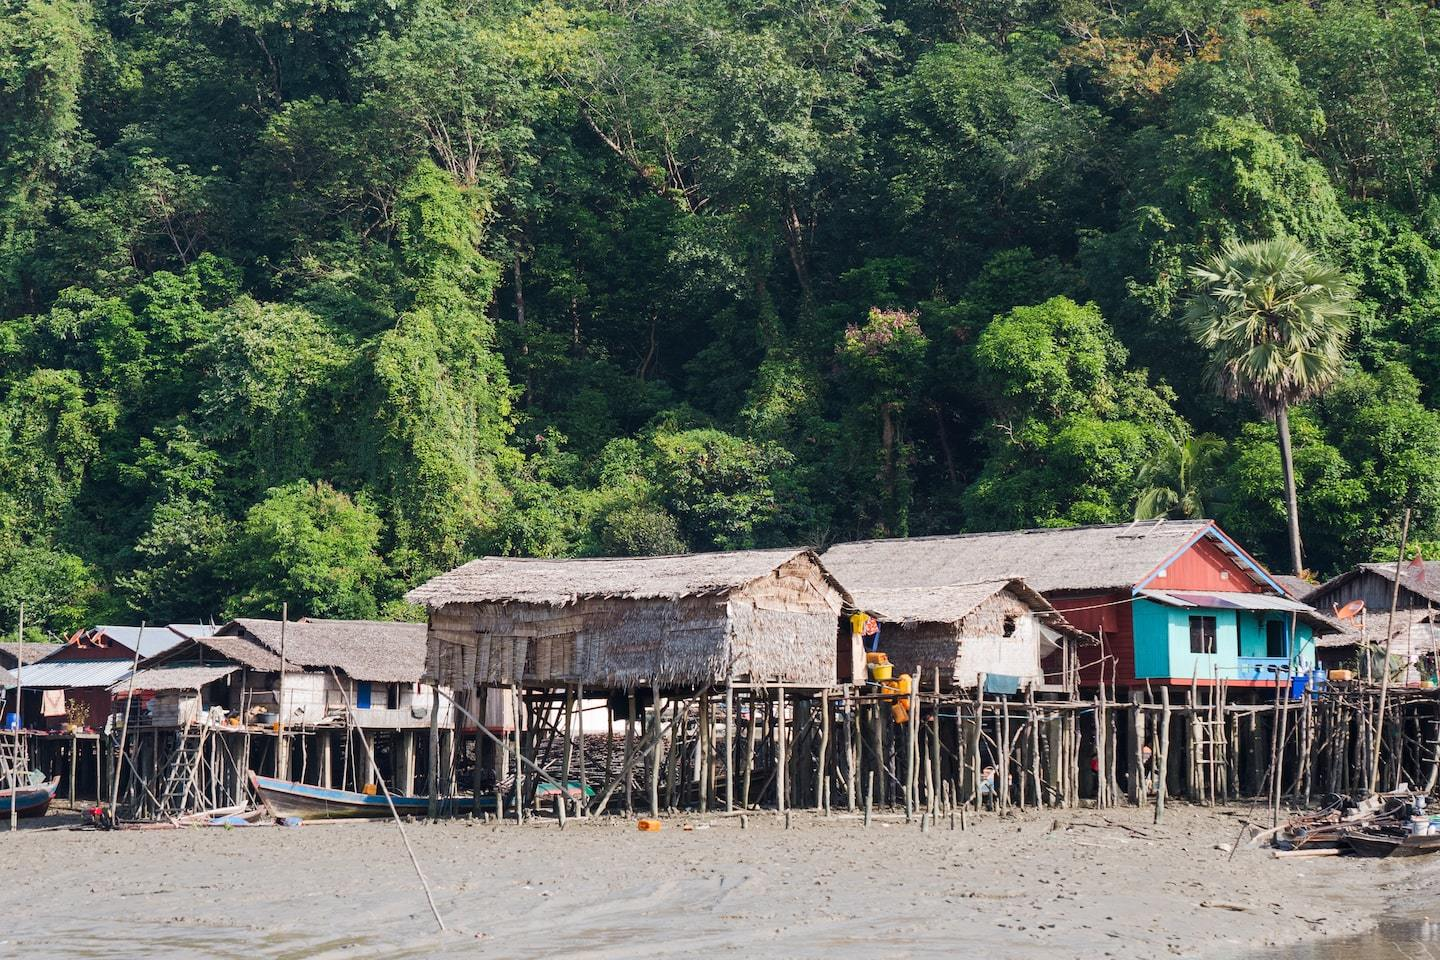 wooden houses on stilts on the beach in front of a forest